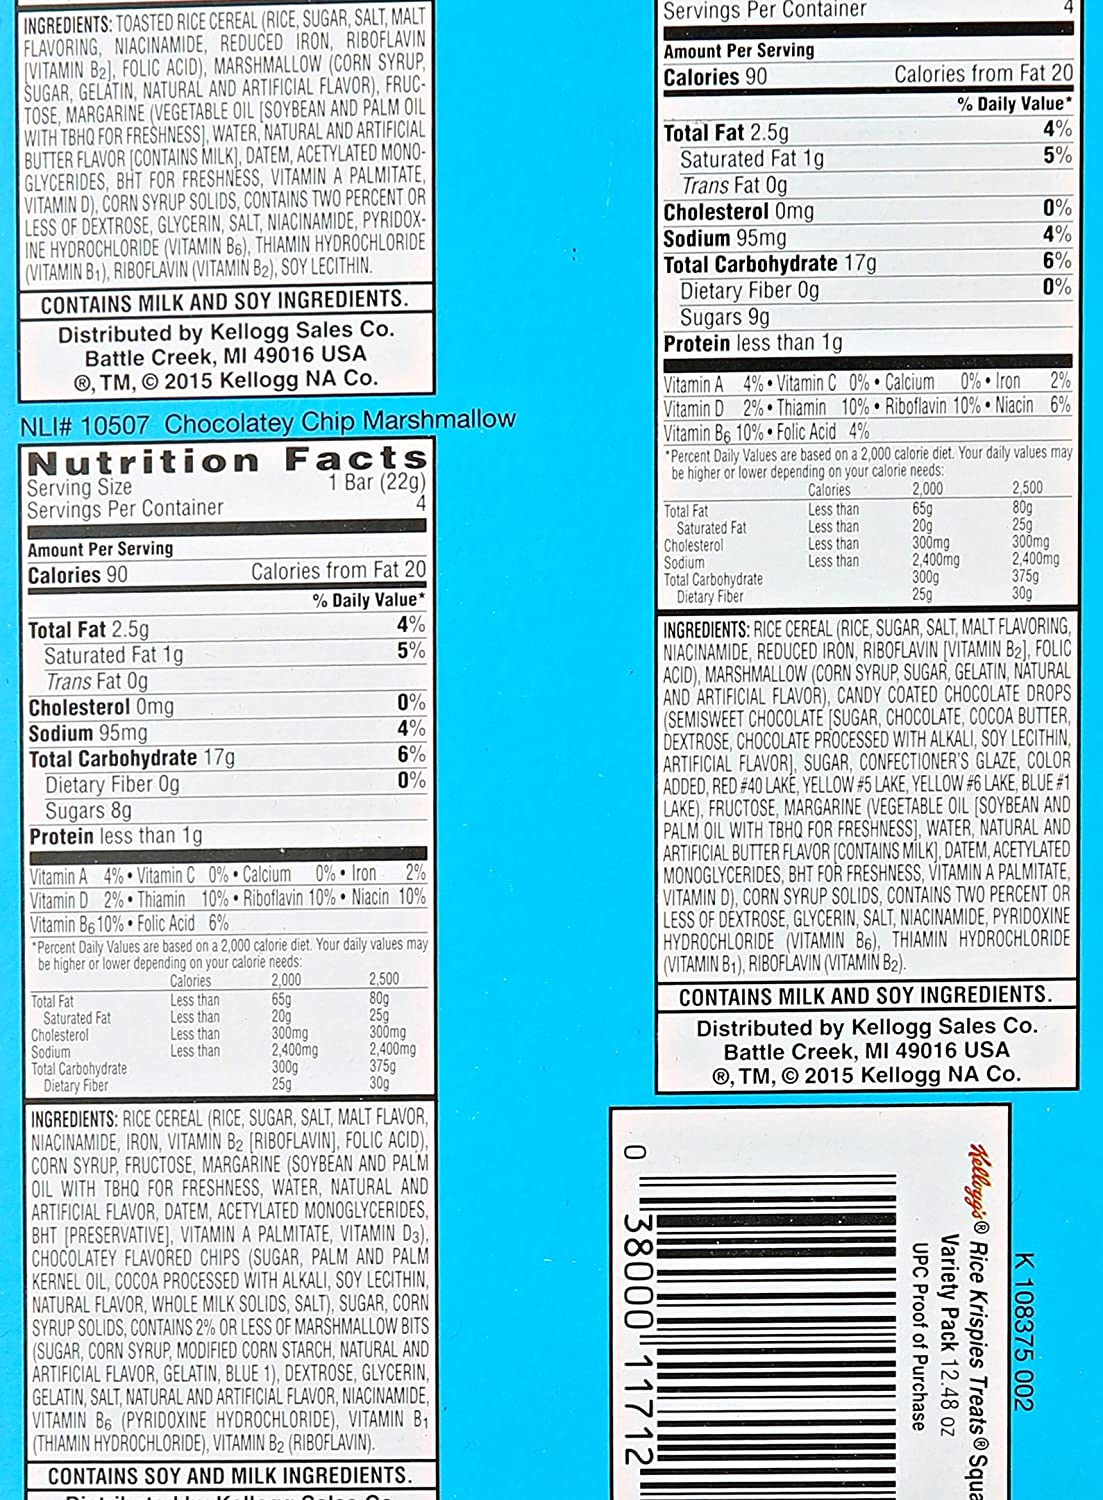 Amazon.com: Kelloggs Rice Krispies Treats Variety Pack, 12.48 Ounce: Prime Pantry